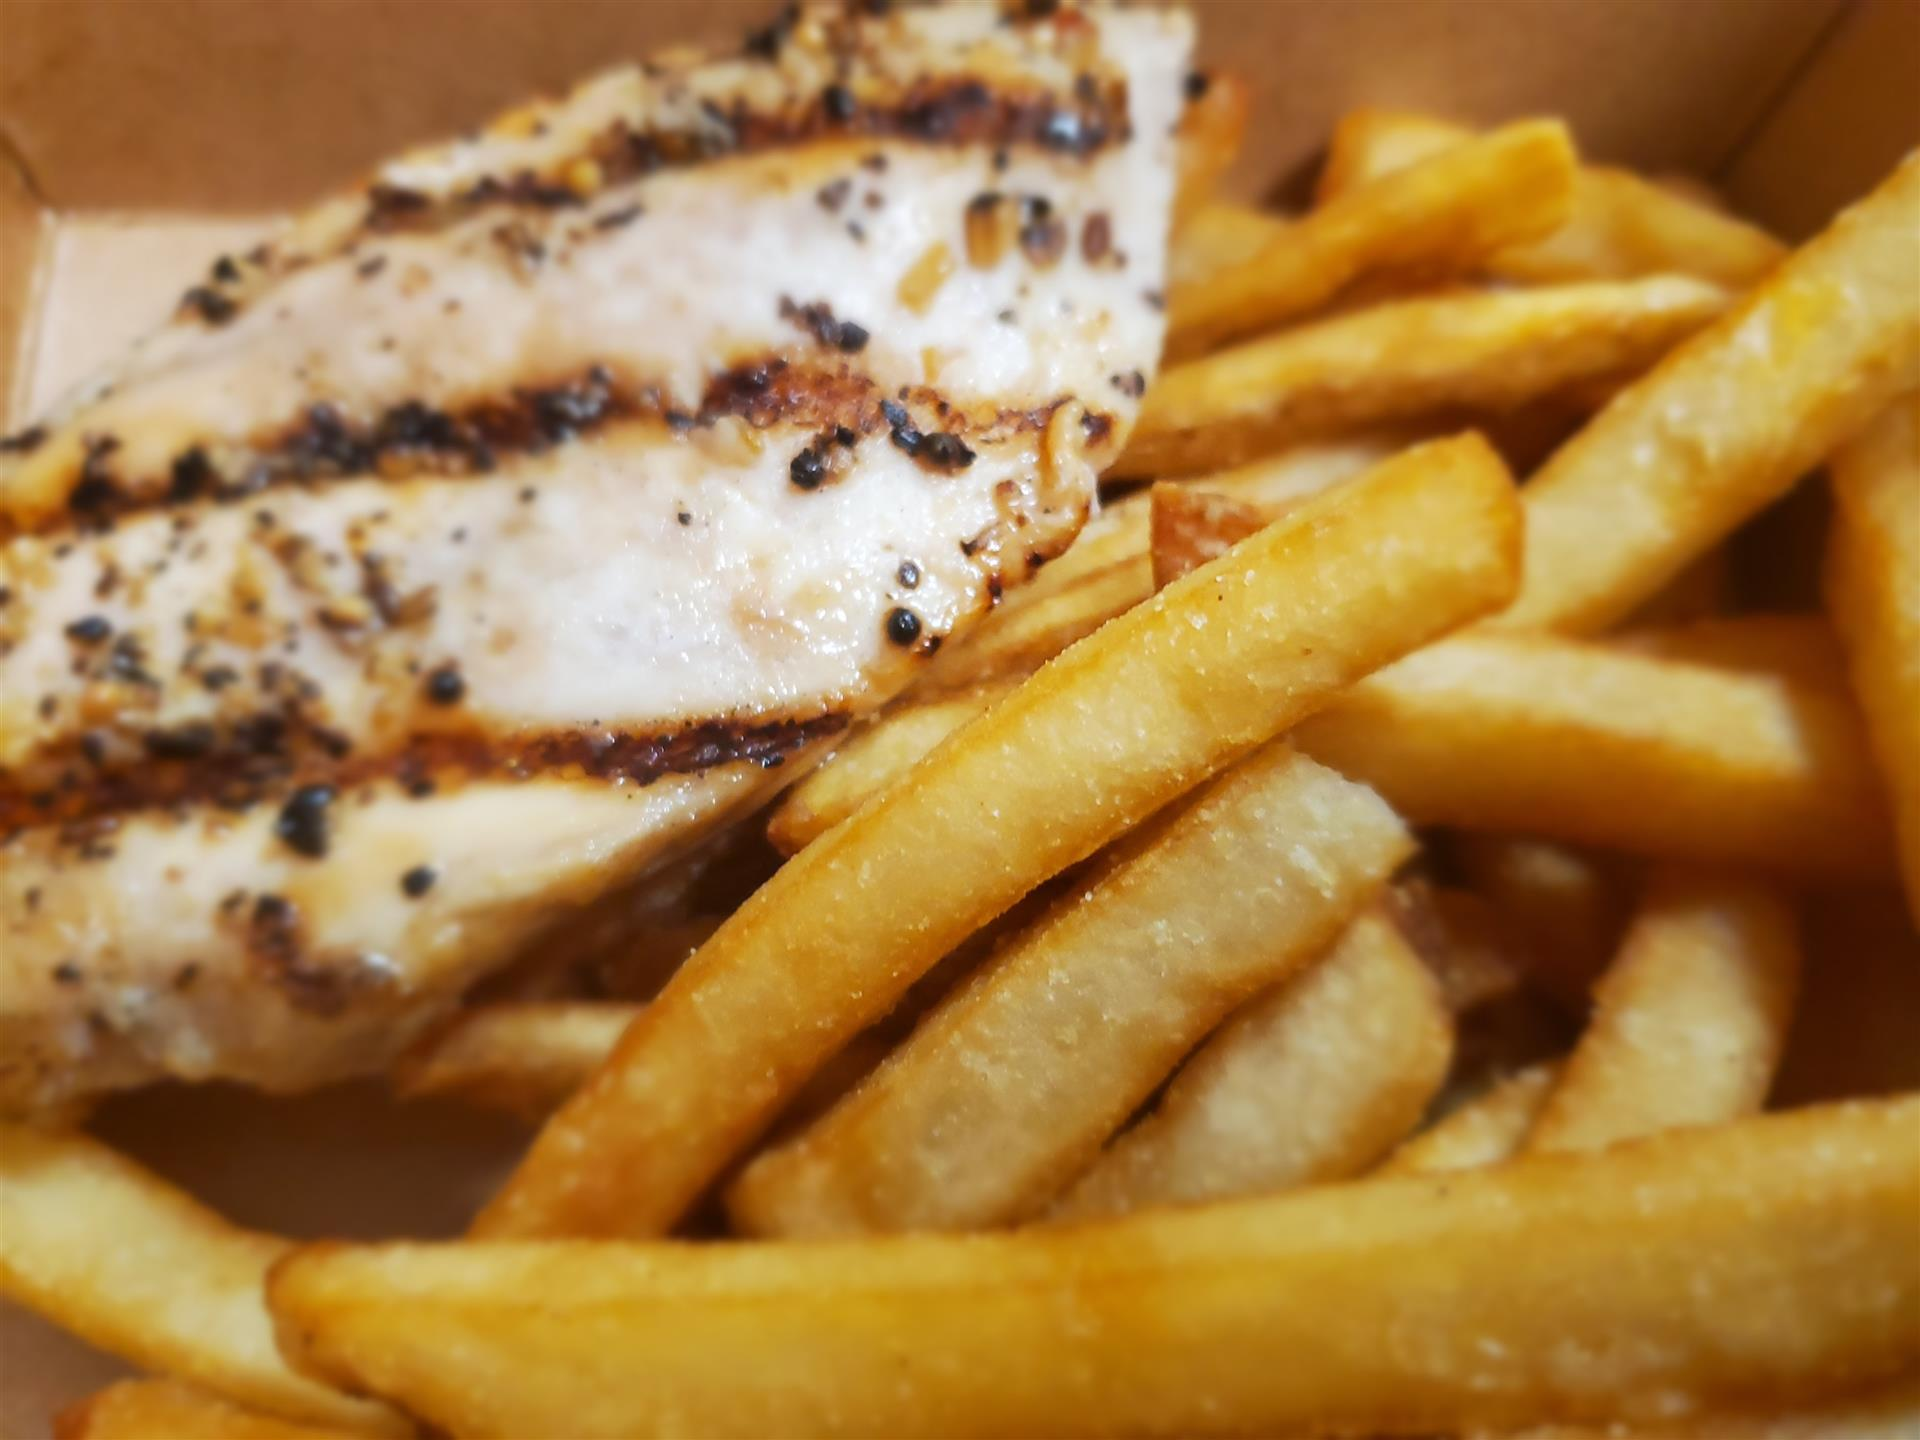 piece of grilled chicken with a side of french fries